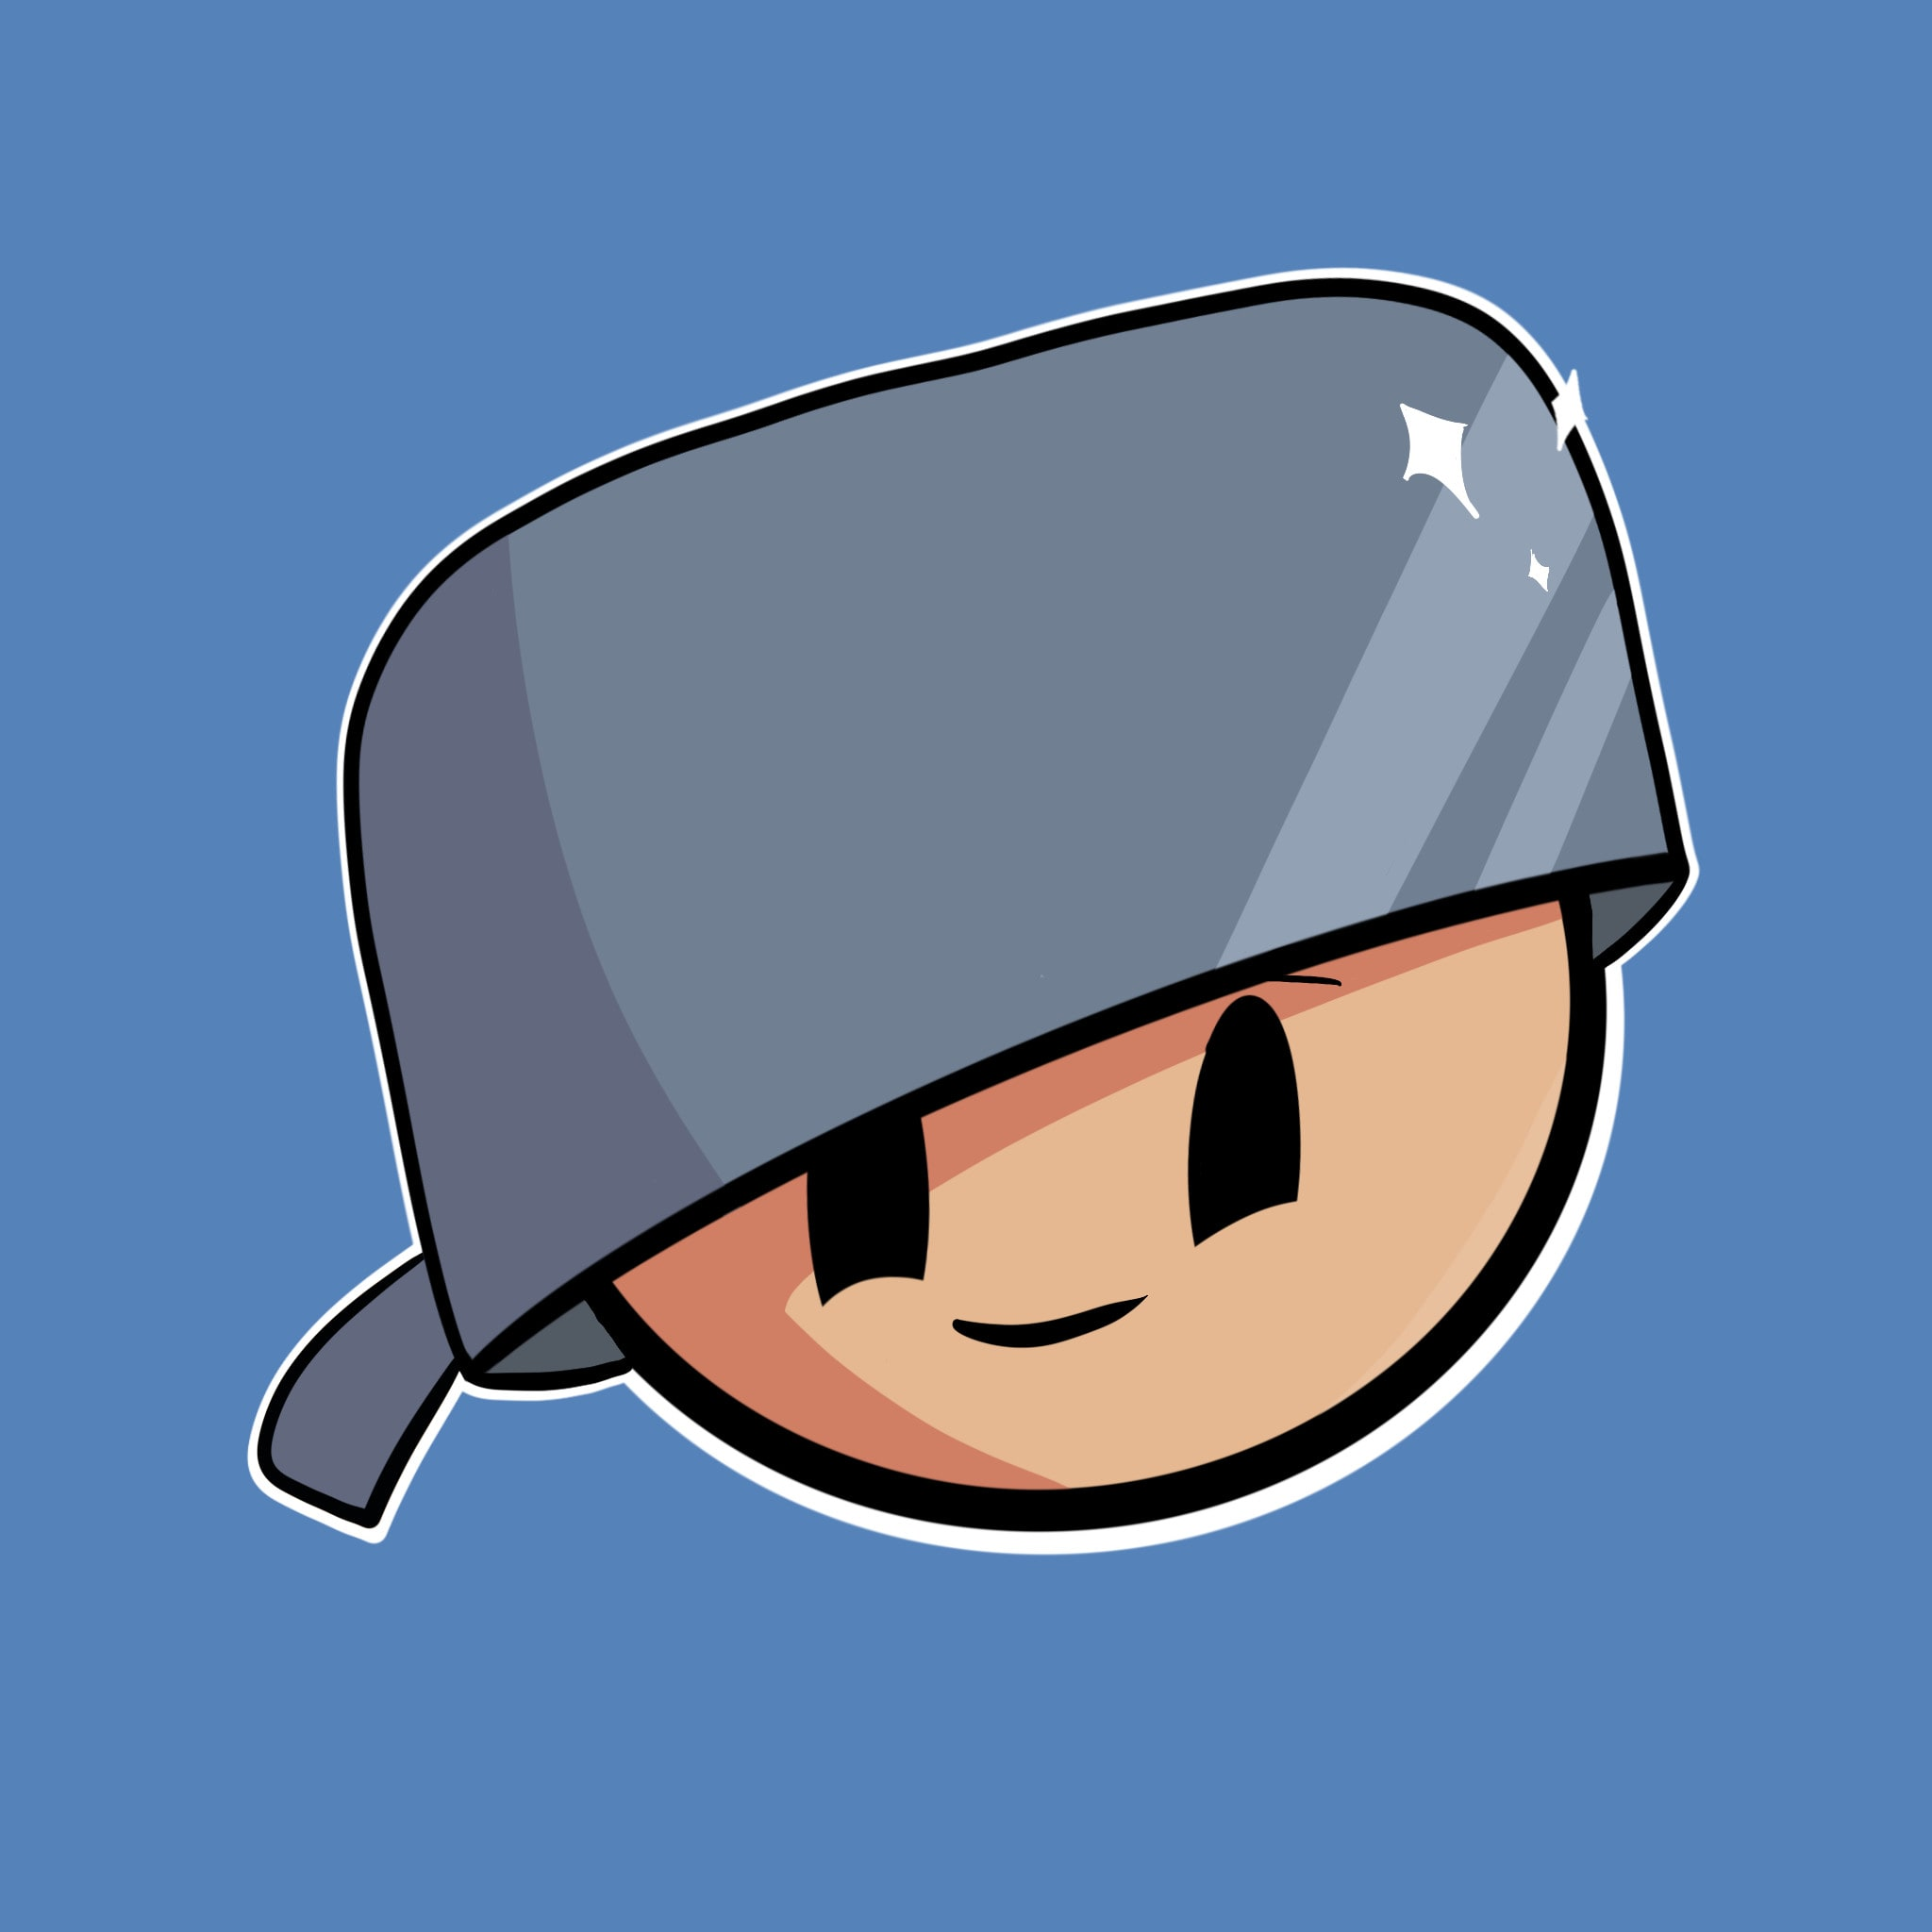 Roblox Taiwan Posts Facebook Draw You A Very Professional Roblox Or Minecraft Head By Dantedeprenda